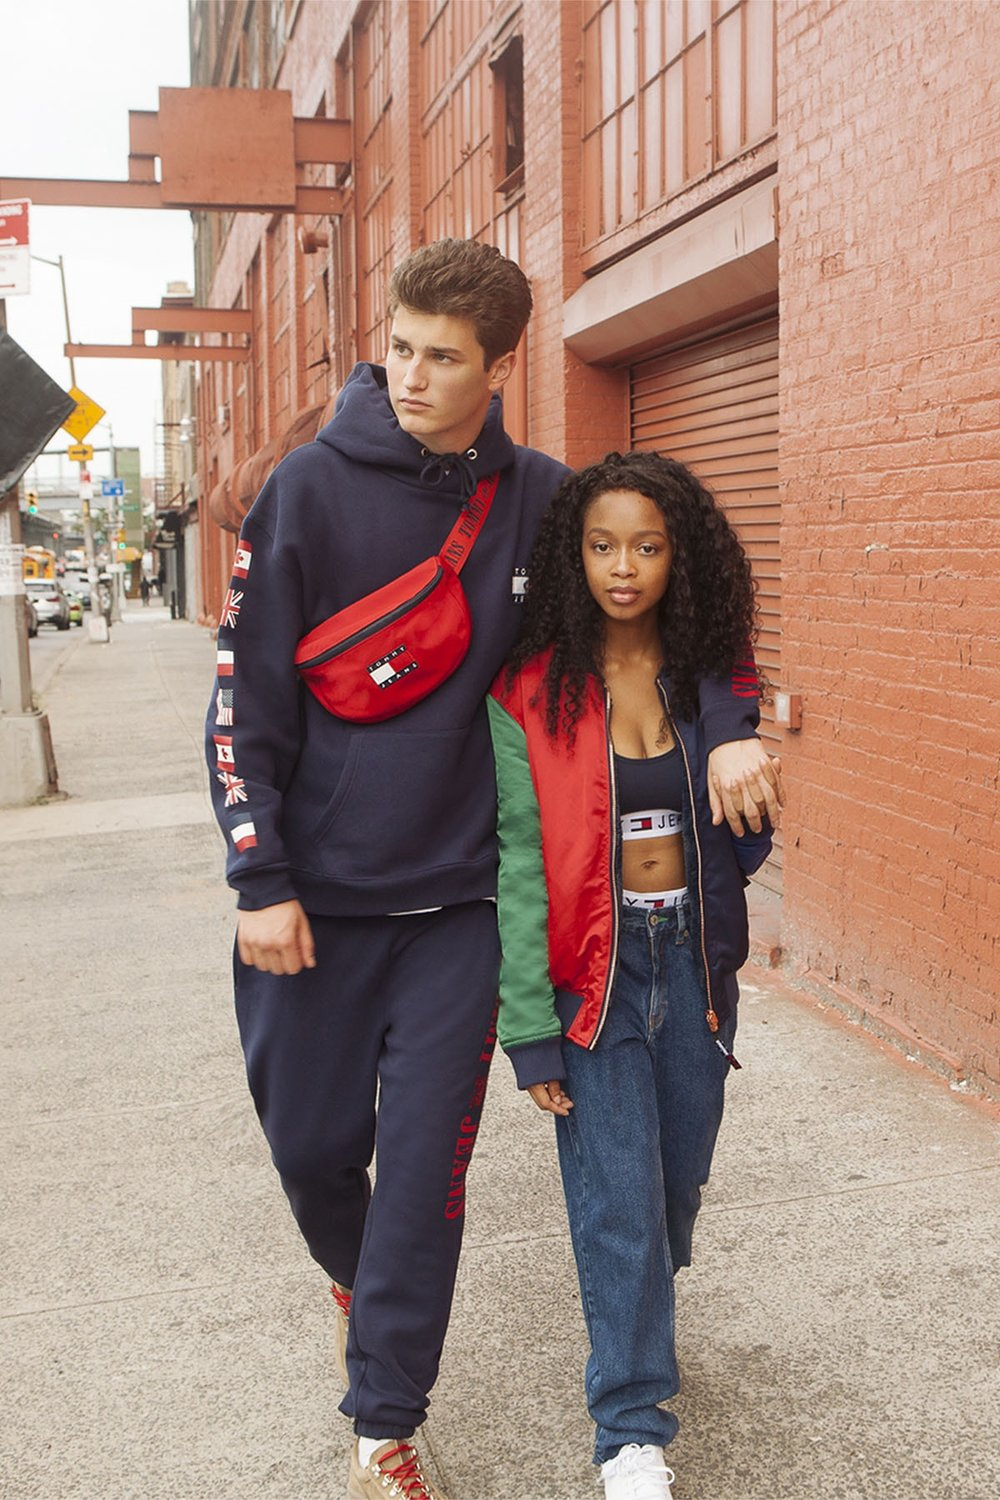 63a3d23d7 The TOMMY JEANS capsule has been released, all about celebrating the 90's  Tommy looks.